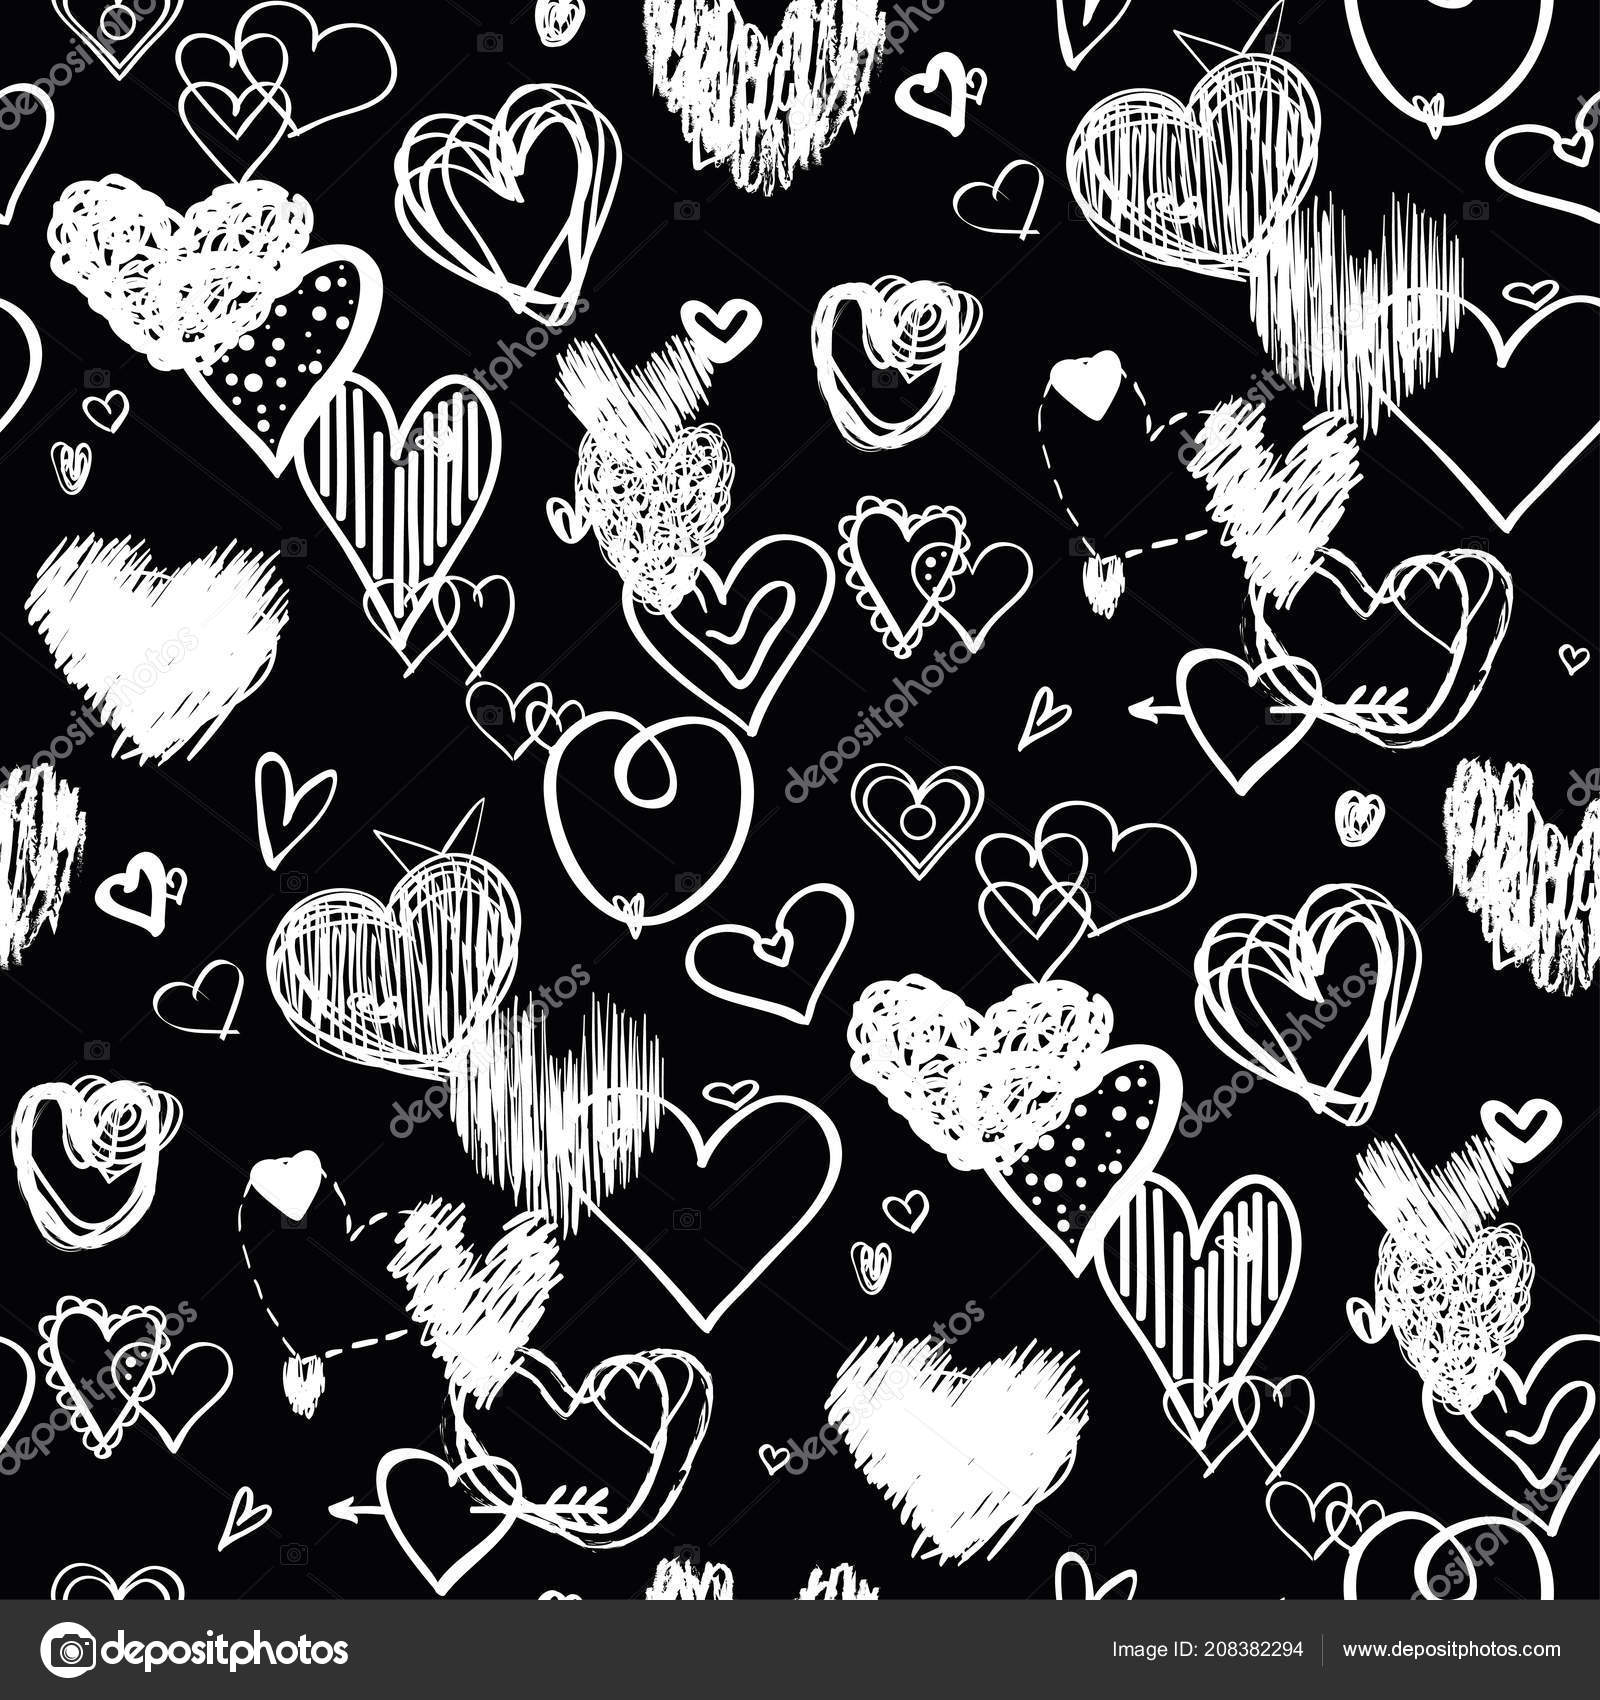 219 2198263 hearts black background abstract seamless wallpaper heart in